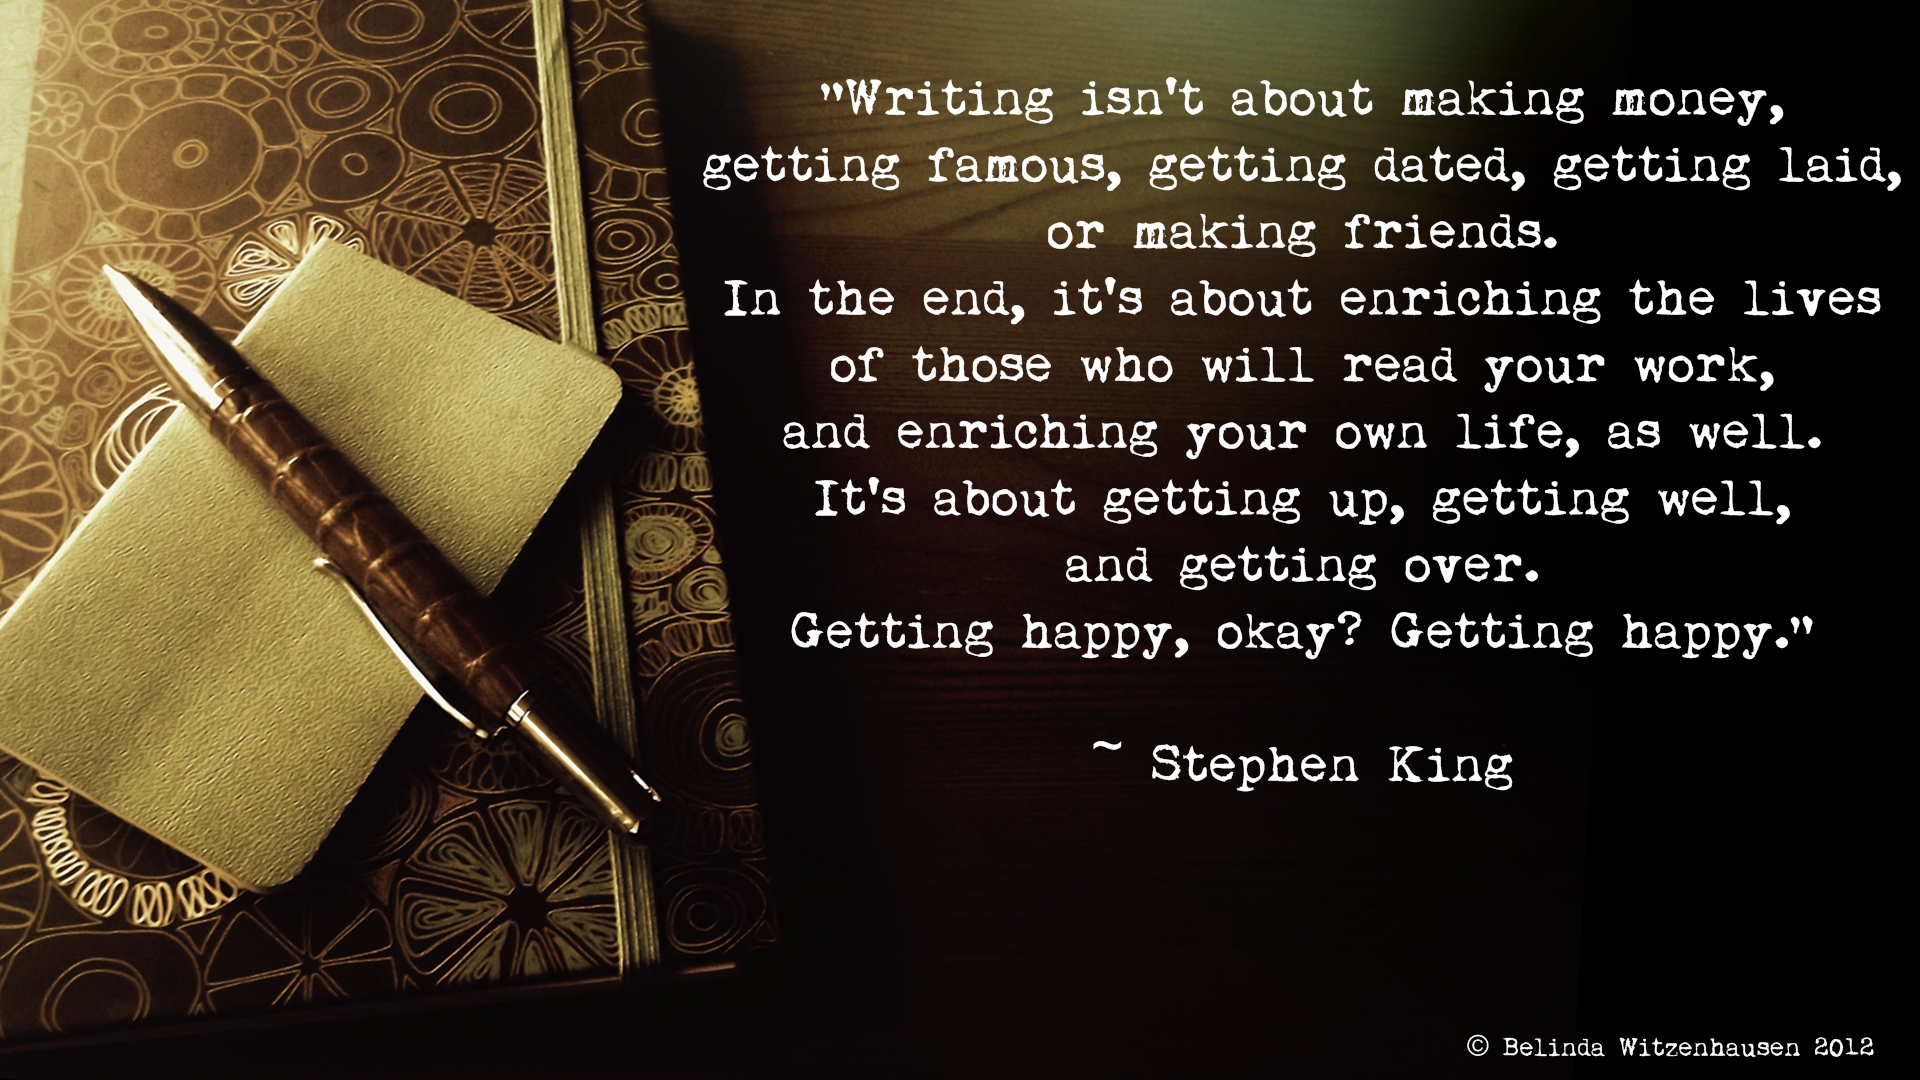 Writers Quotes Quote Of The Day  Writing Isn't About Making Money Or Getting